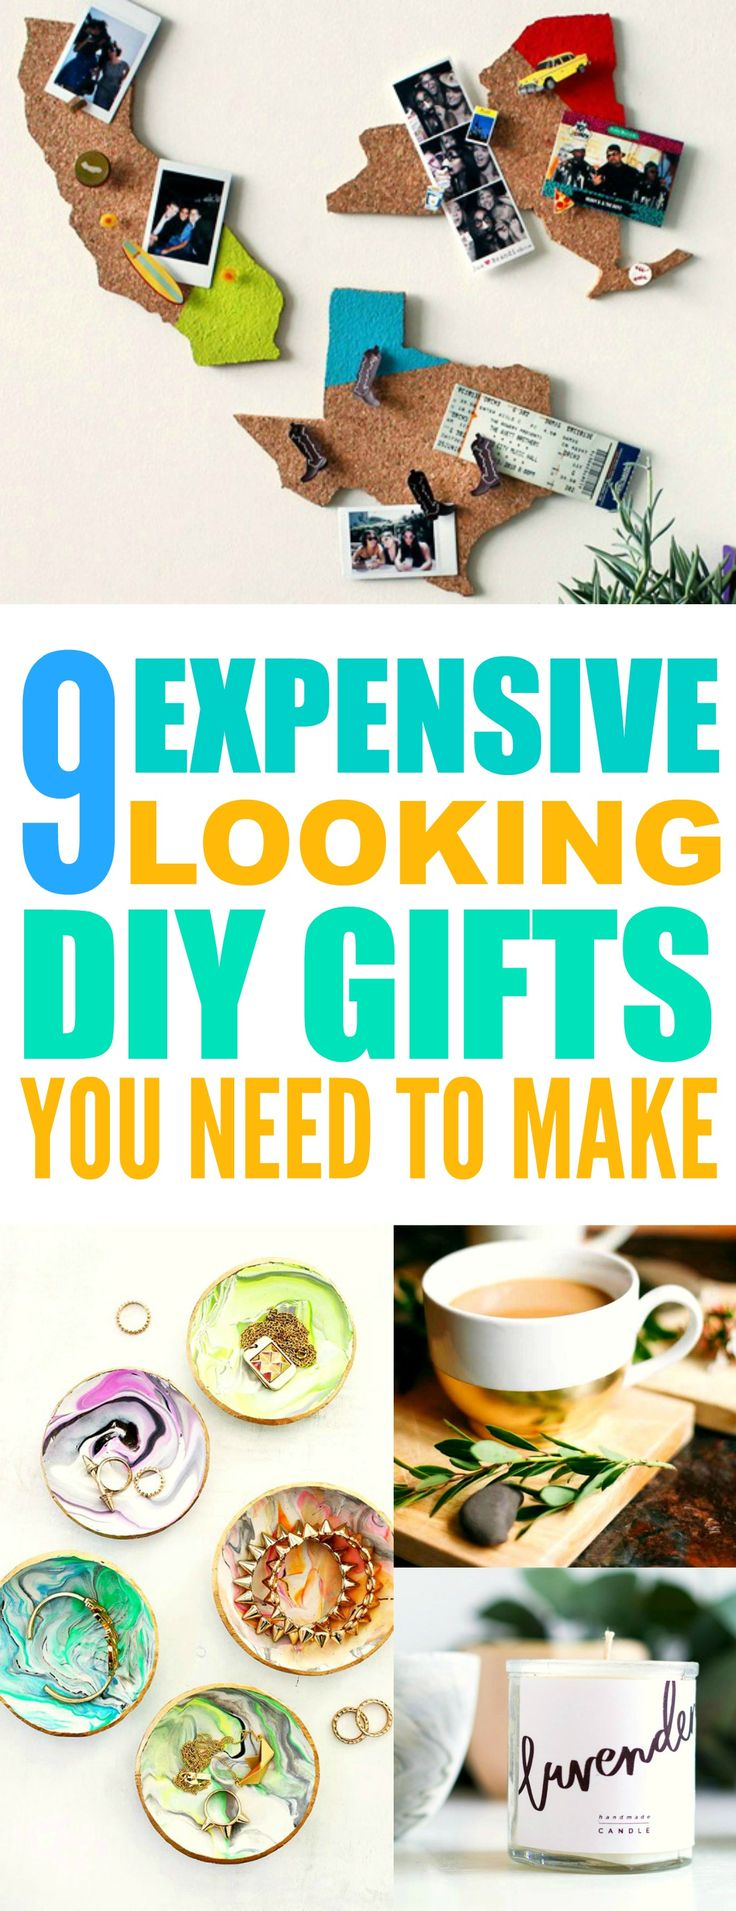 1127 Best Gift Idea Images On Pinterest Ideas Birthday Gifts